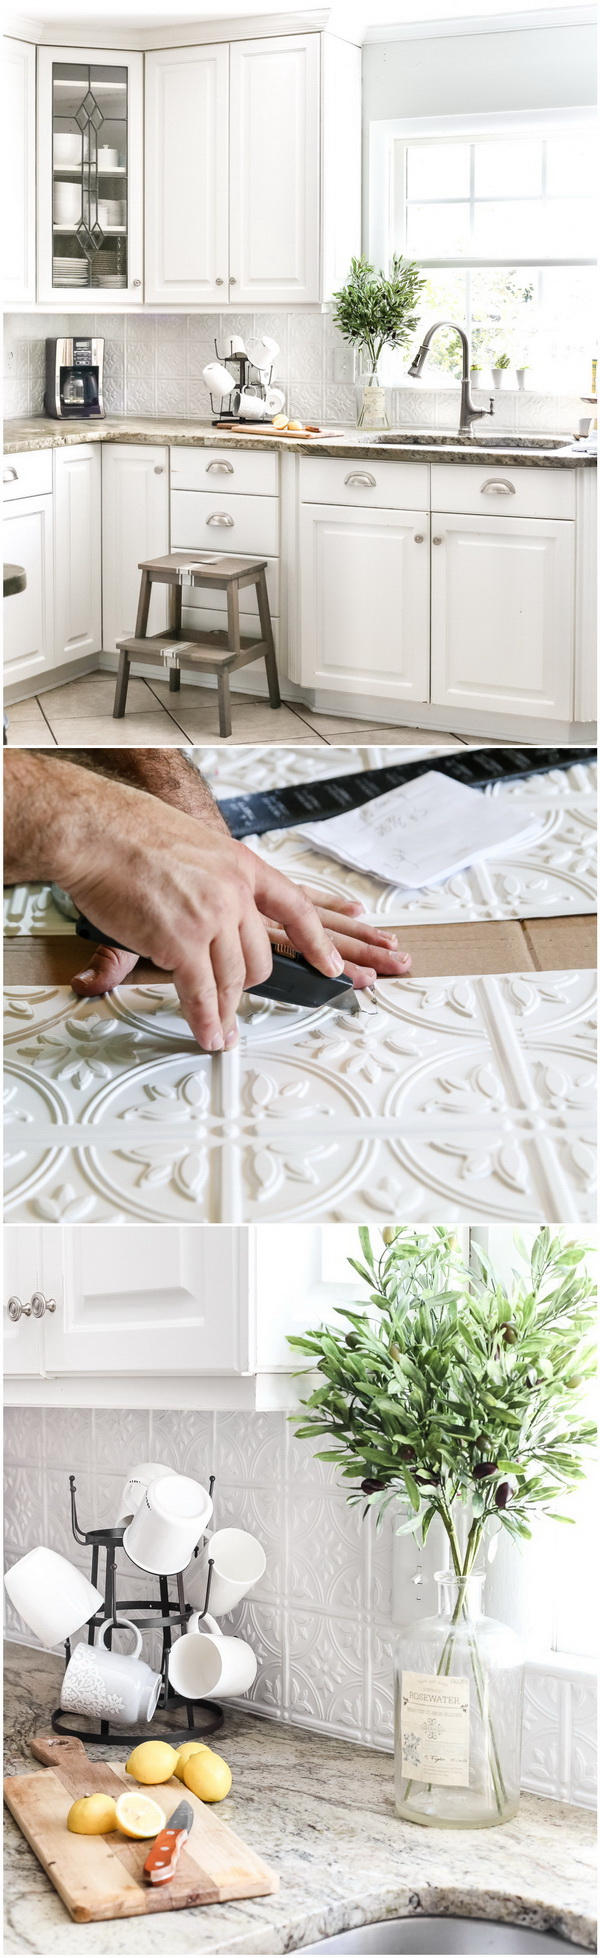 DIY Pressed Tin Kitchen Backsplash. This backsplash looks so delicate and elegant. You can totally do it by yourself.